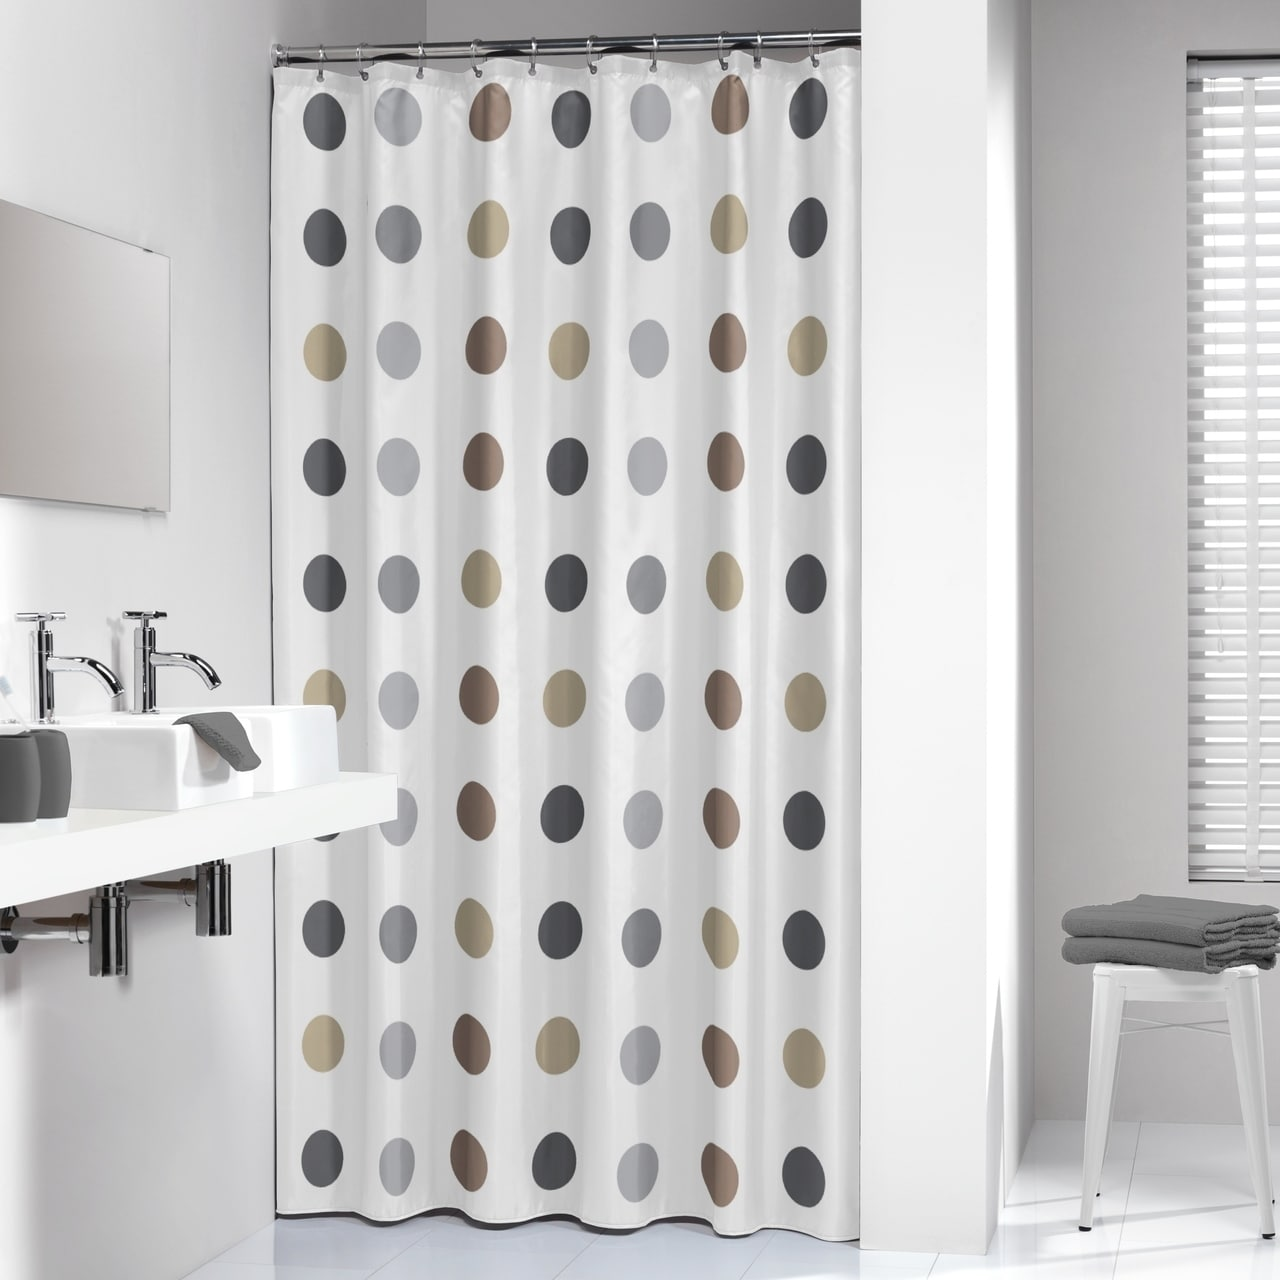 Long Shower Curtain Sealskin Extra Long Shower Curtain 78 X 72 Inch Twister Taupe Fabric